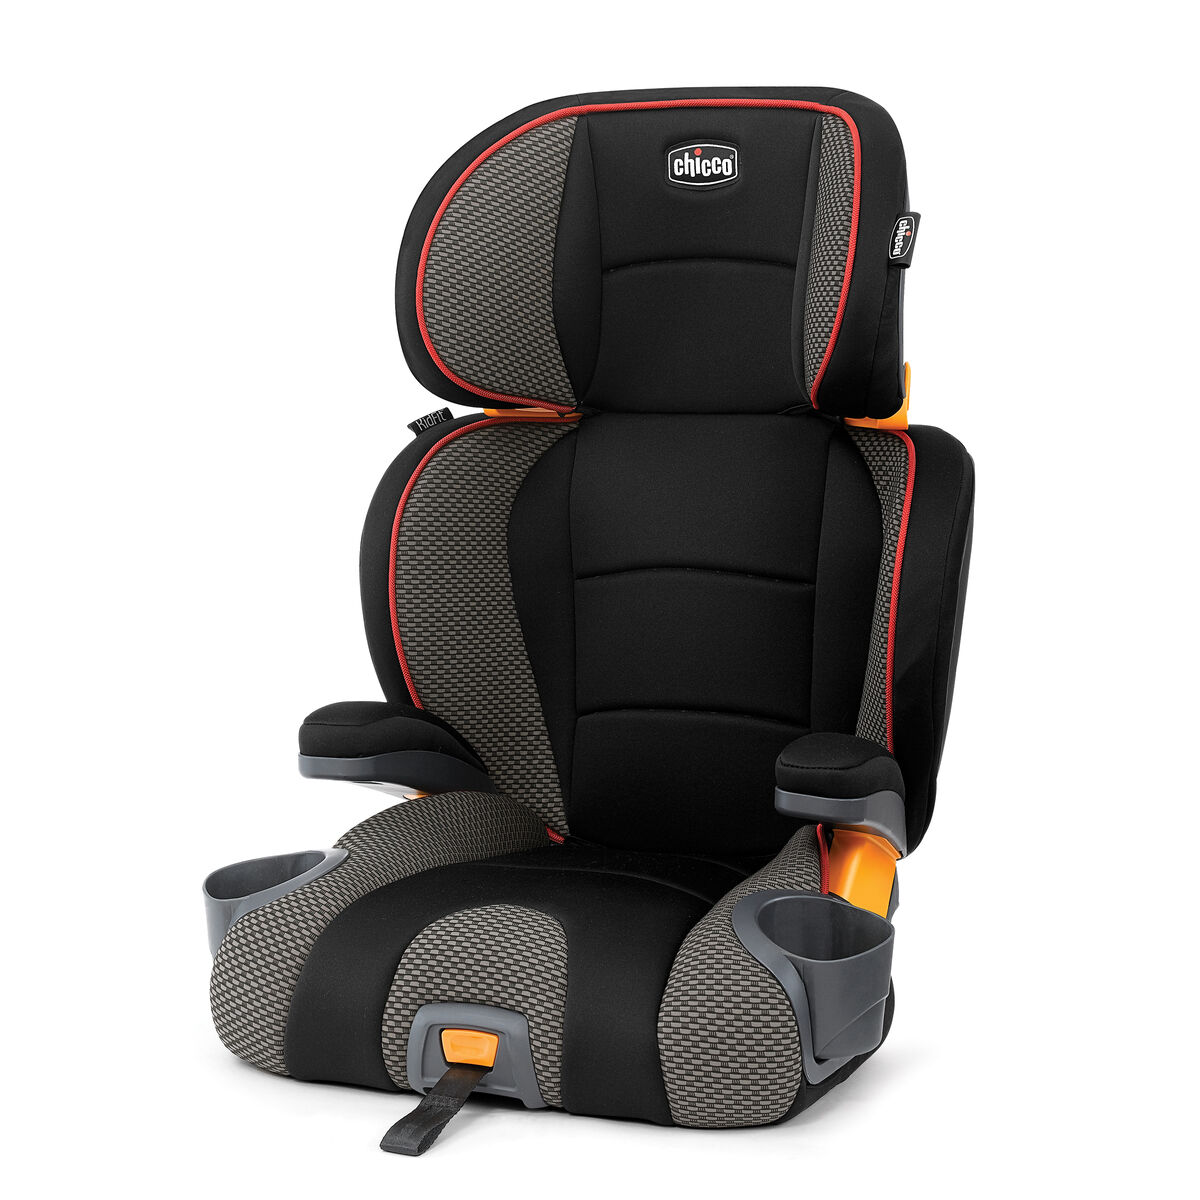 chicco chicco kidfit 2 in 1 belt positioning booster car seat atmosphere. Black Bedroom Furniture Sets. Home Design Ideas